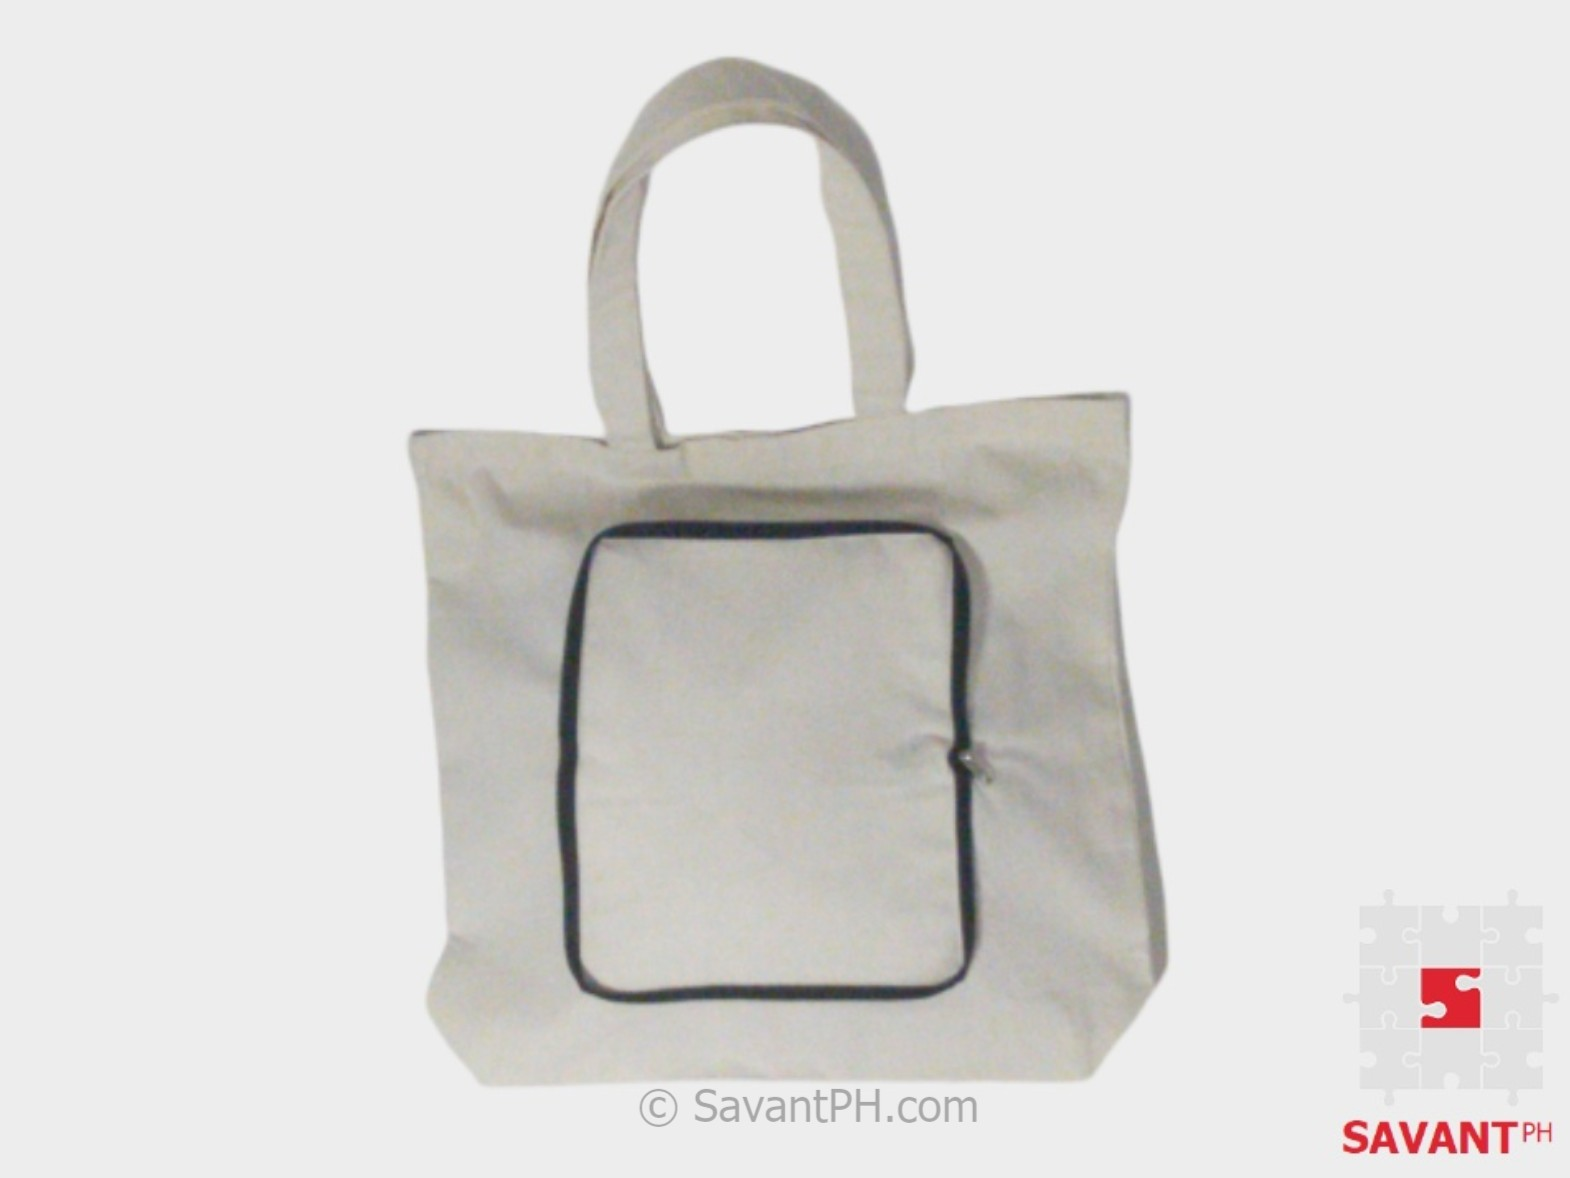 https://www.savantph.com/2019/09/plain-canvas-foldable-tote-bag.html